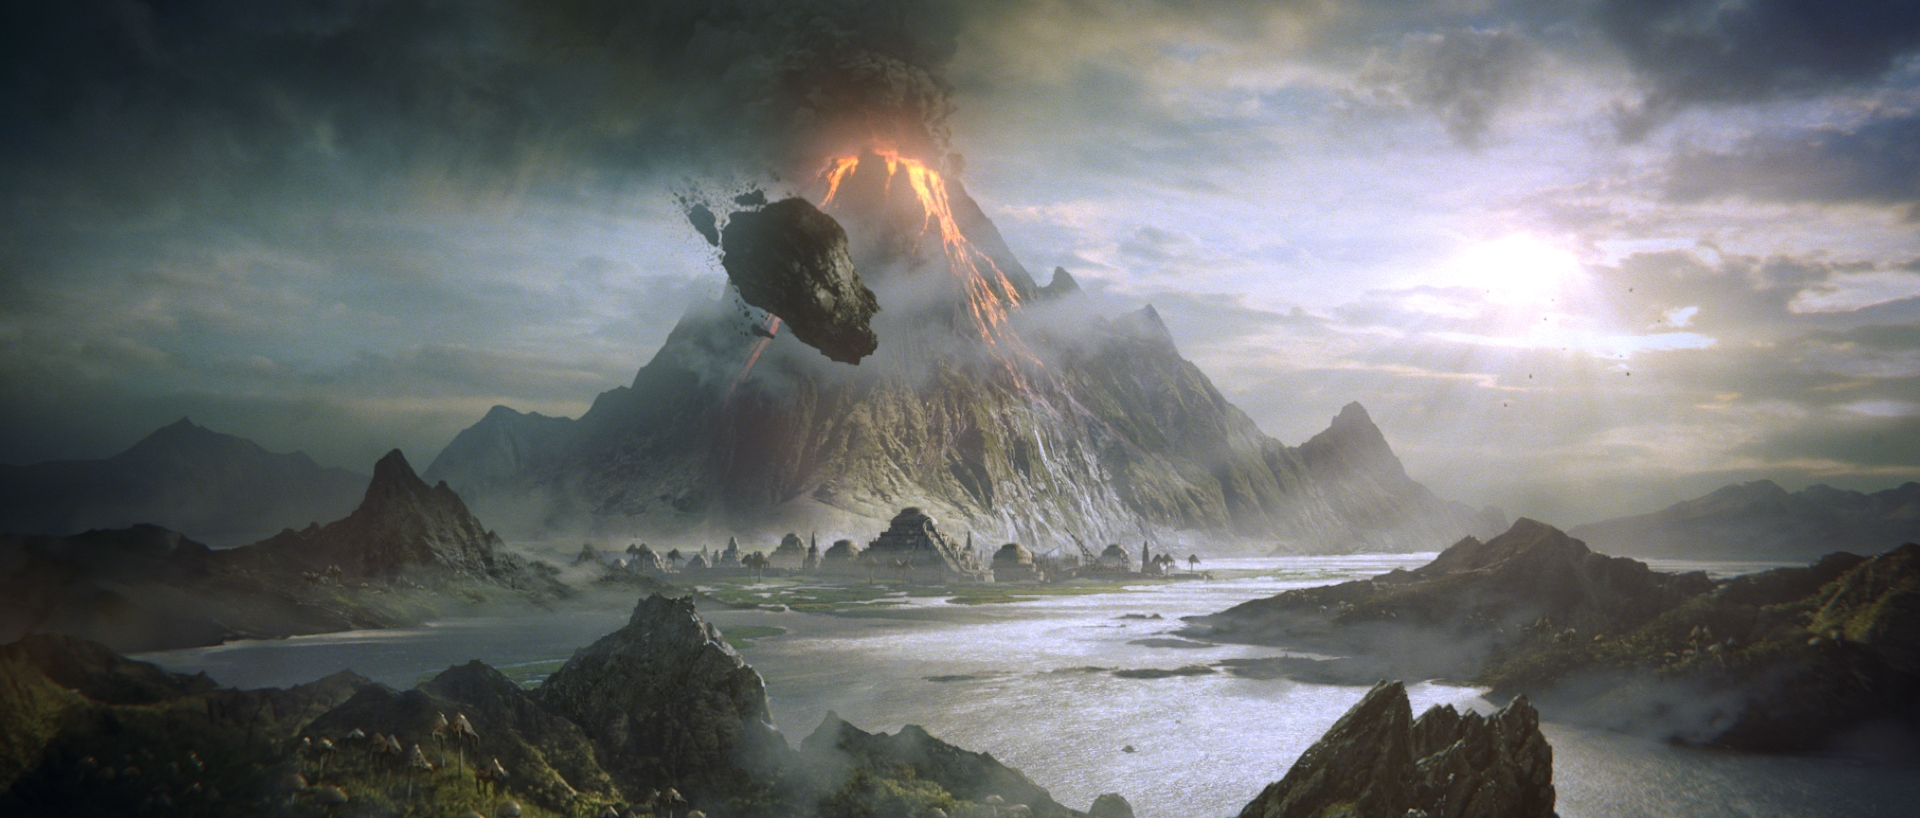 Morrowind expansion coming to the elder scrolls online - Morrowind wallpaper ...